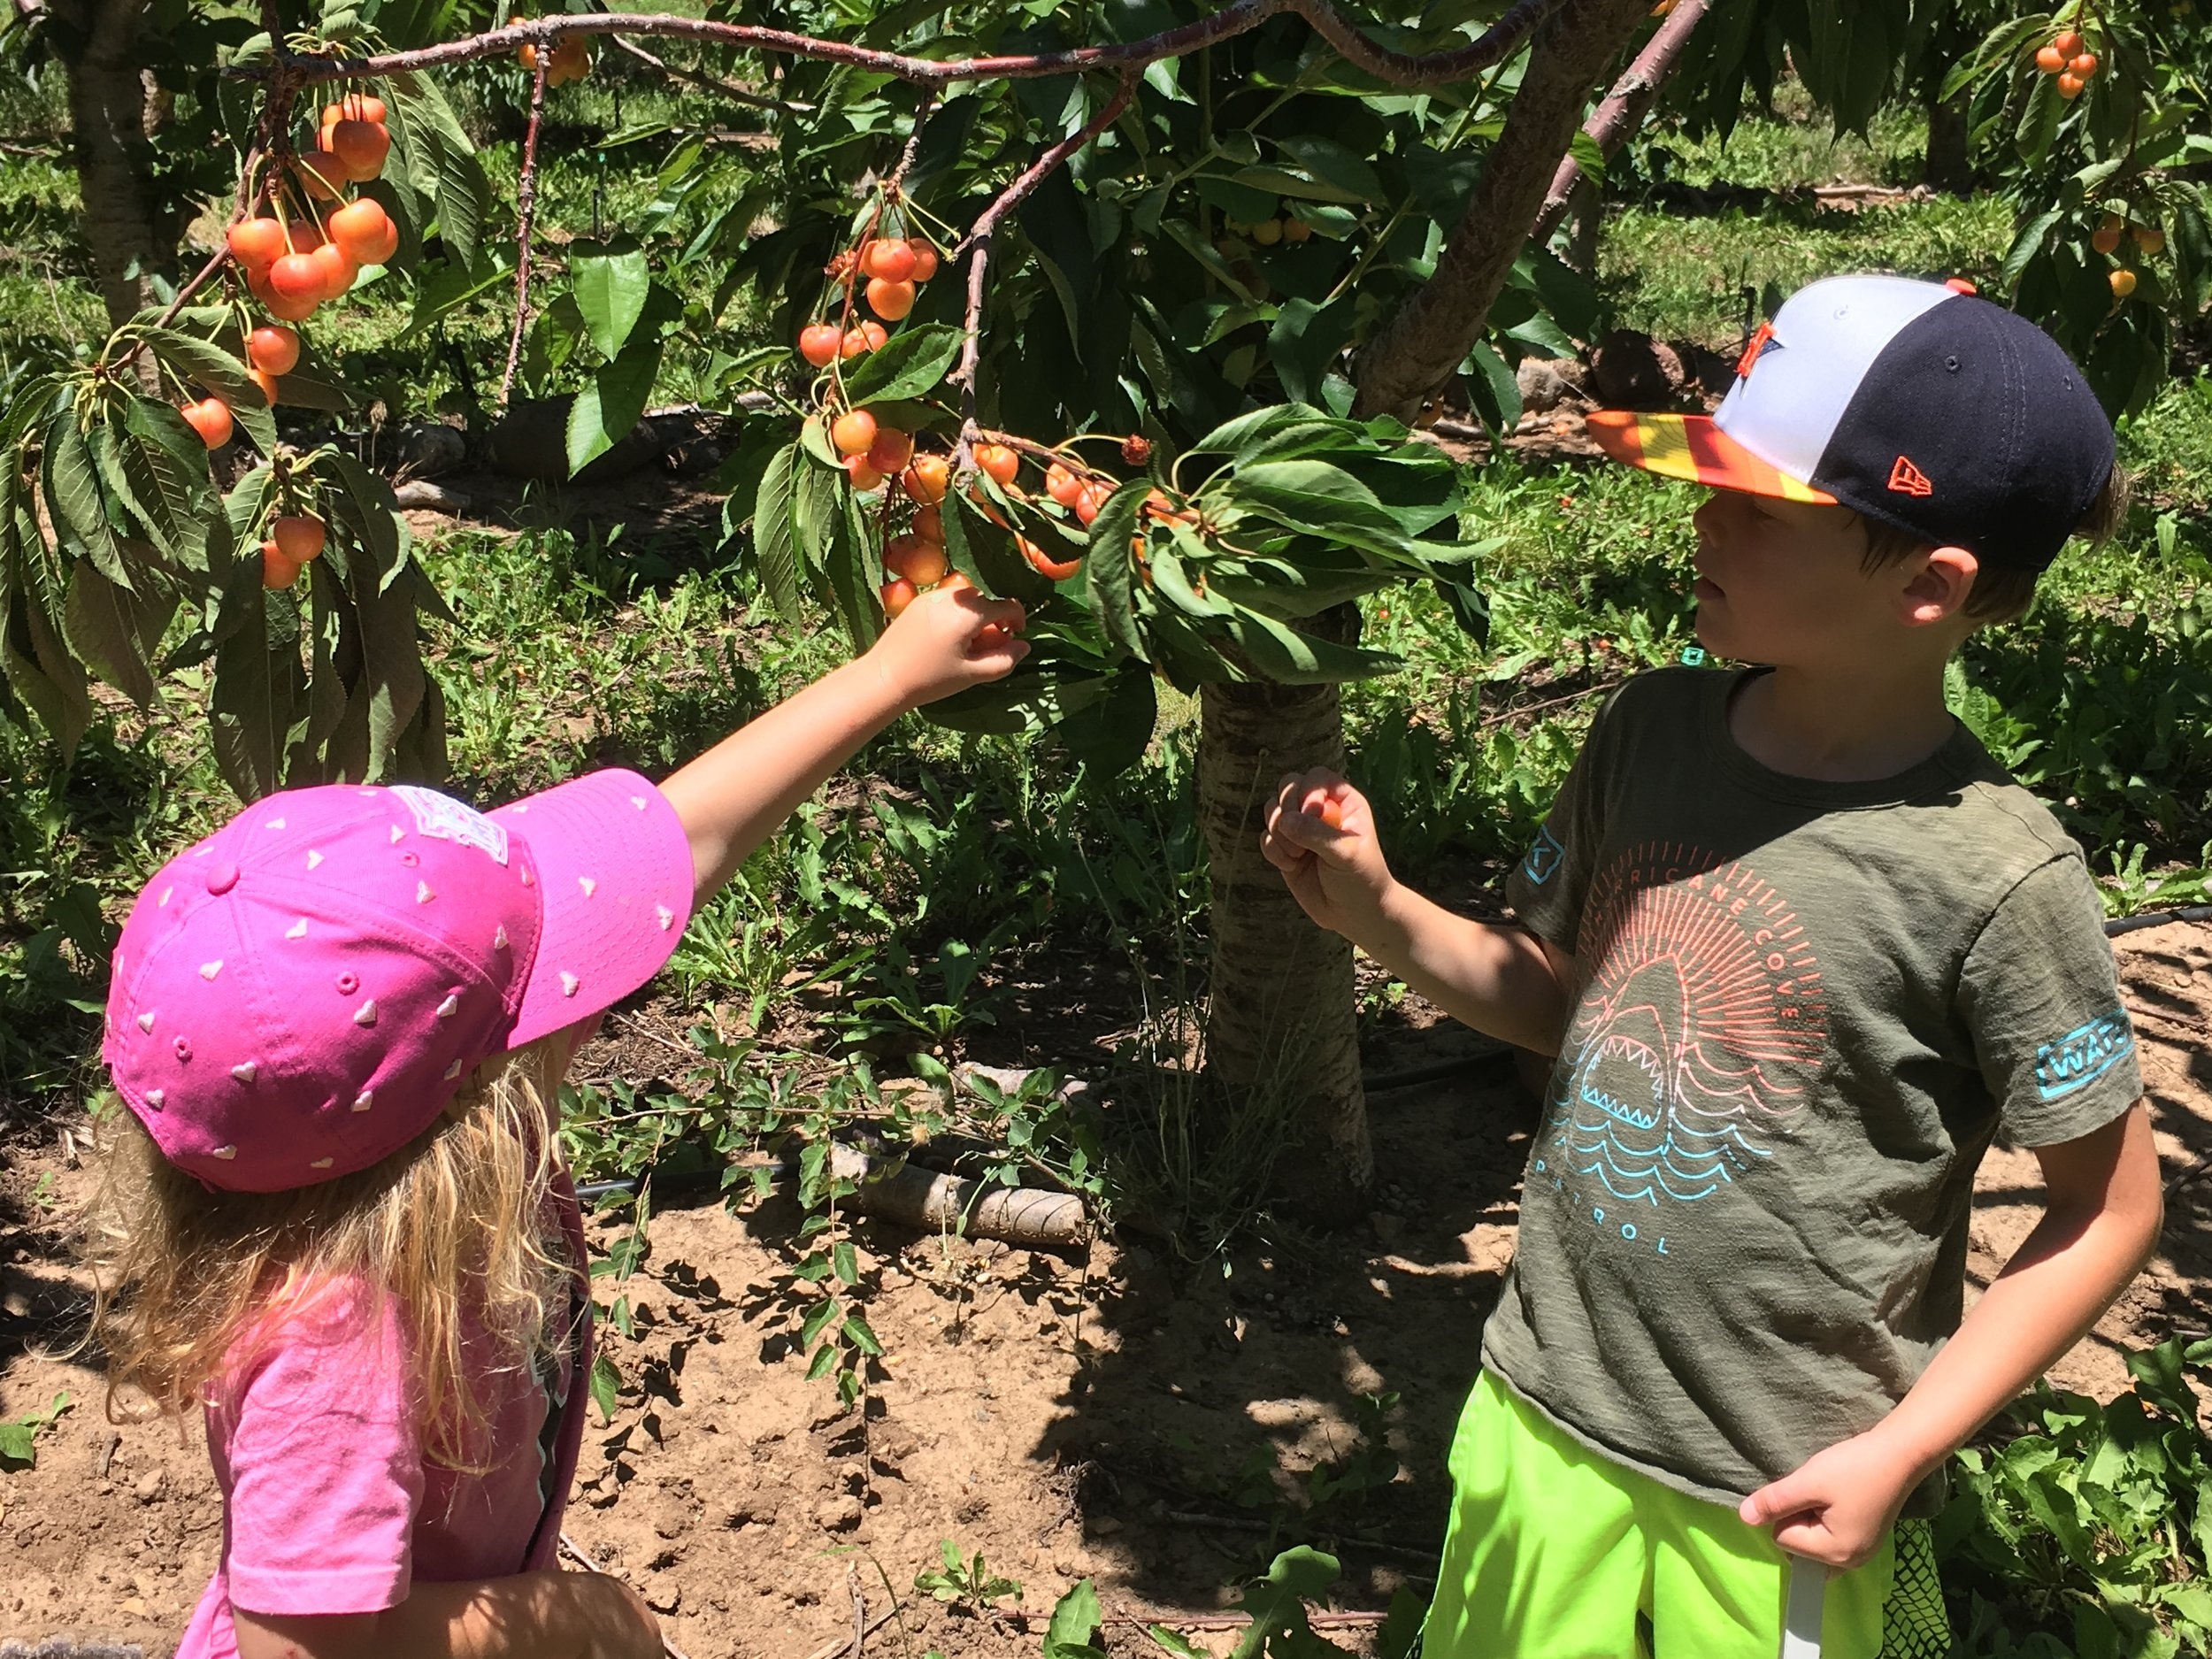 Edith and Rivers were lucky to be here during Paonia's famous cherry season!